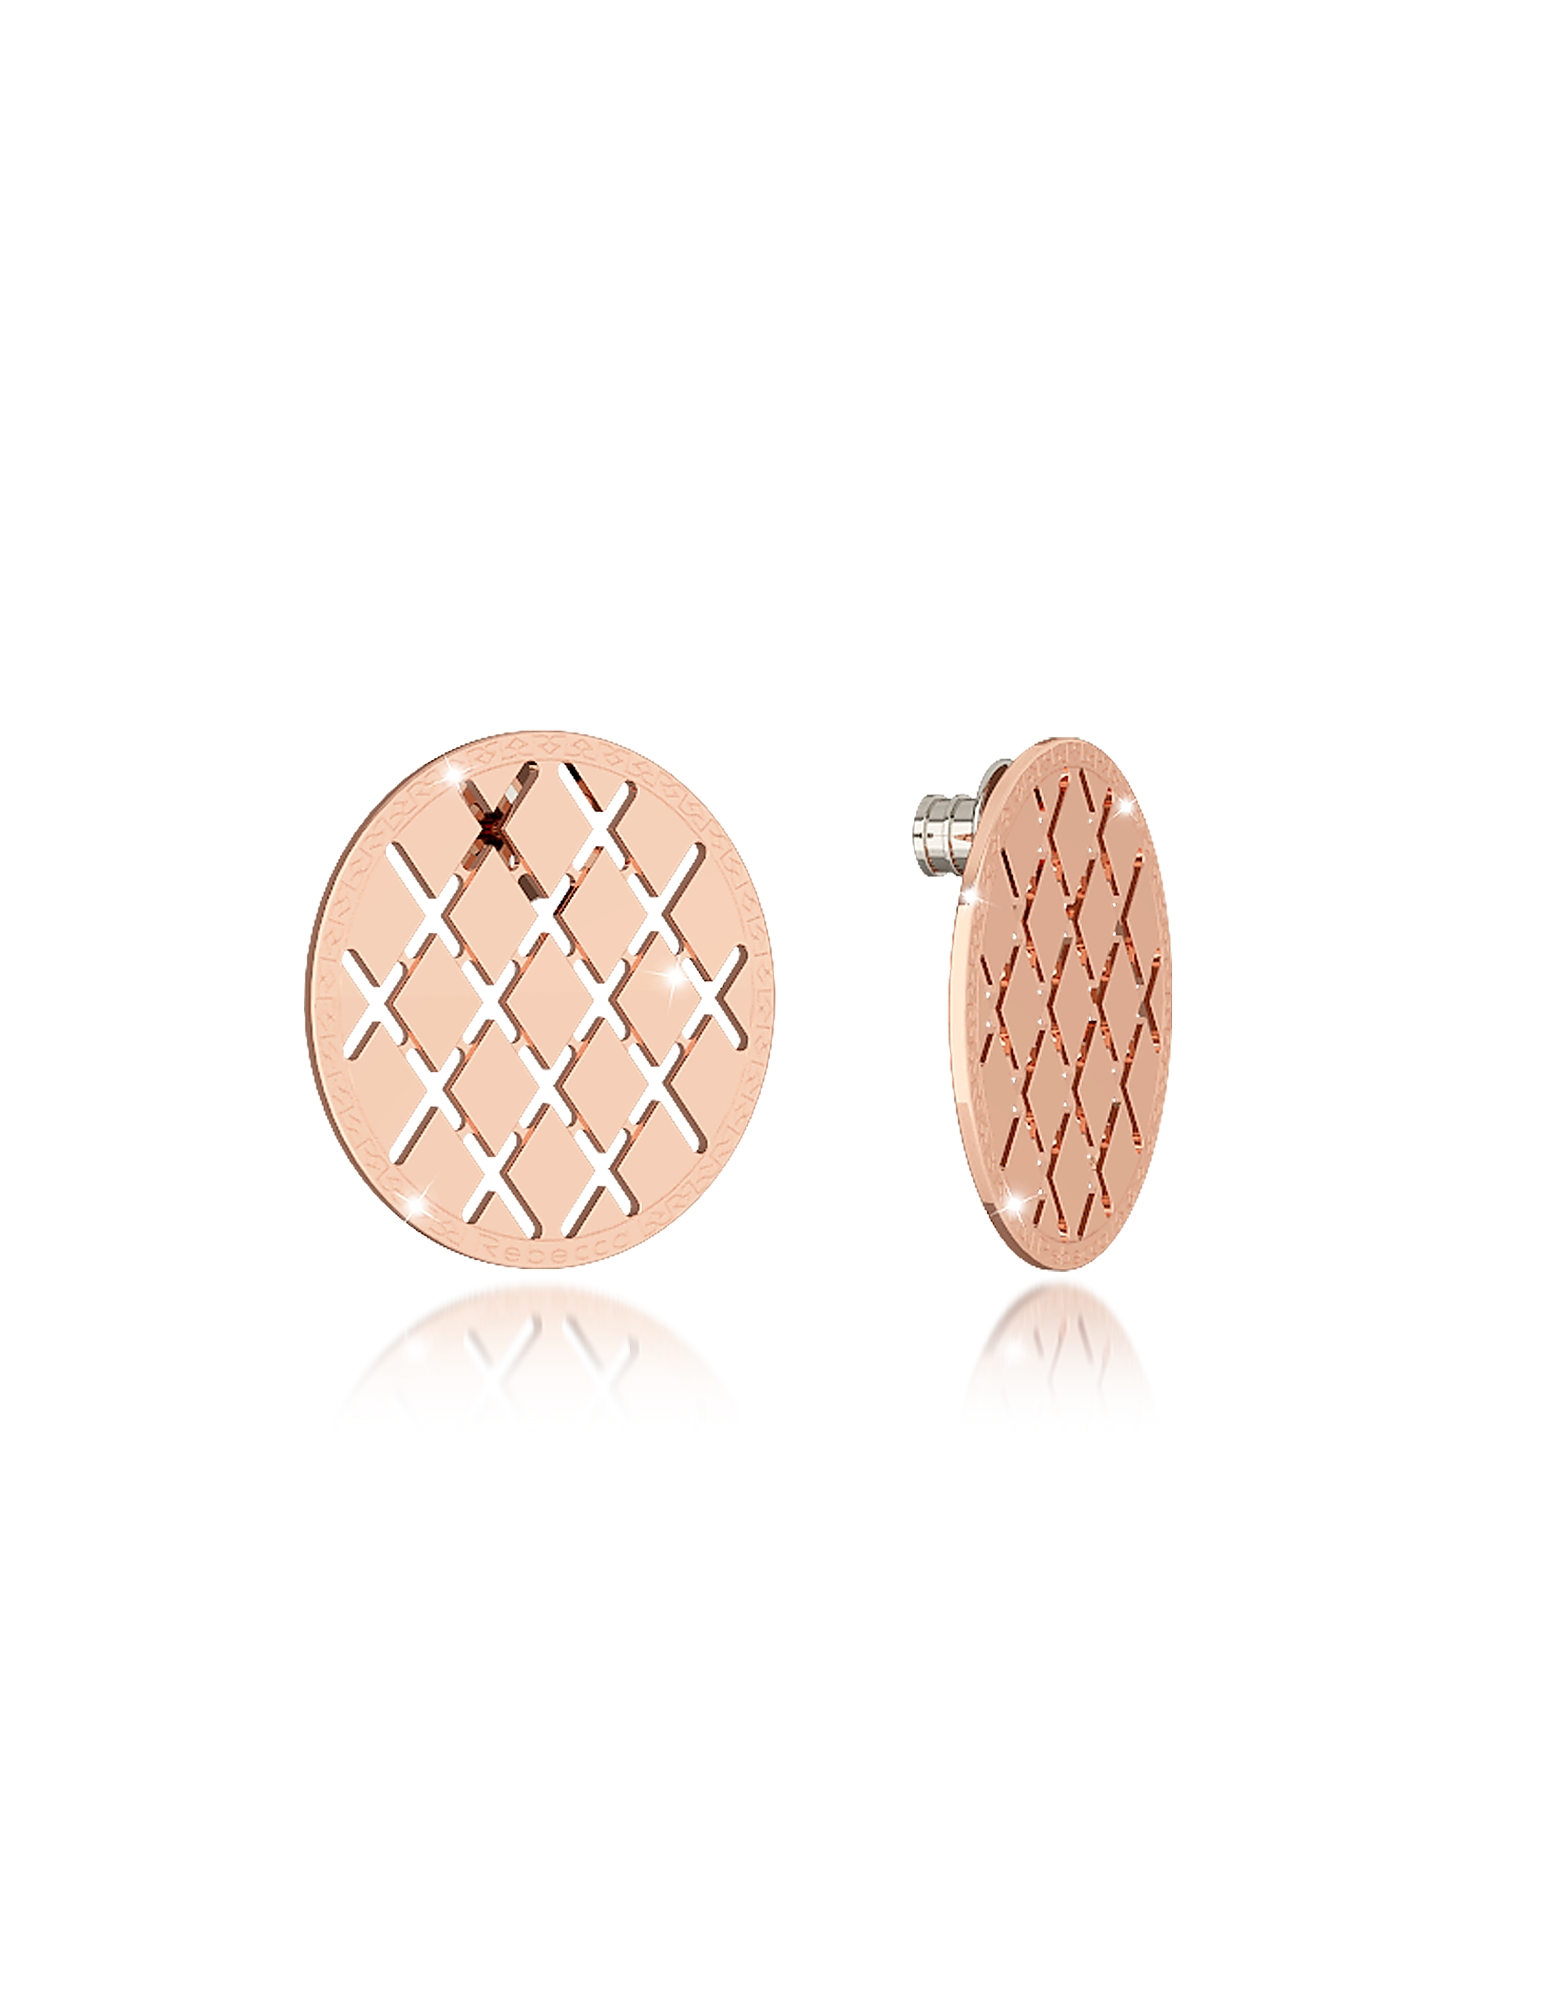 Rebecca Earrings, Melrose Rose Gold Over Bronze Stud Earring